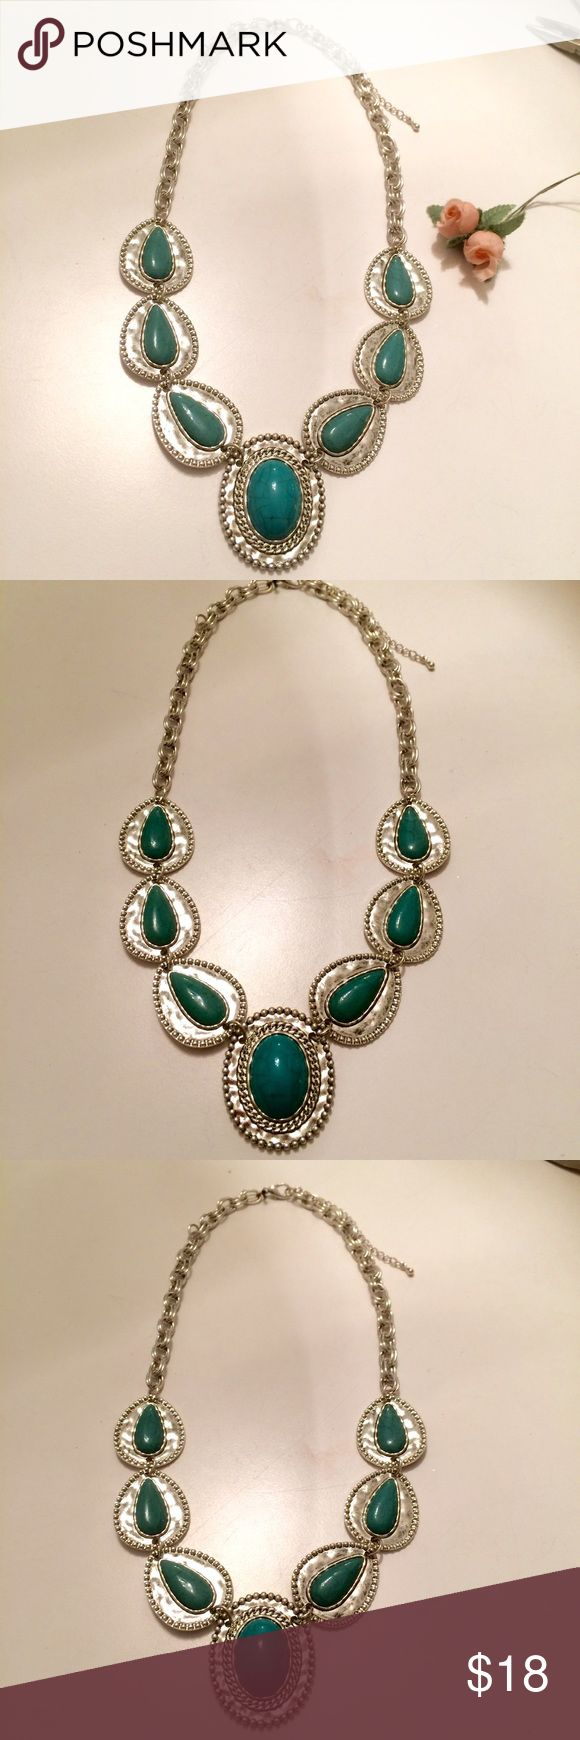 Turquoise and Silver Statement Necklace This is a pre owned turquoise and silver statement necklace . Worn a few times. In excellent condition. Jewelry Necklaces